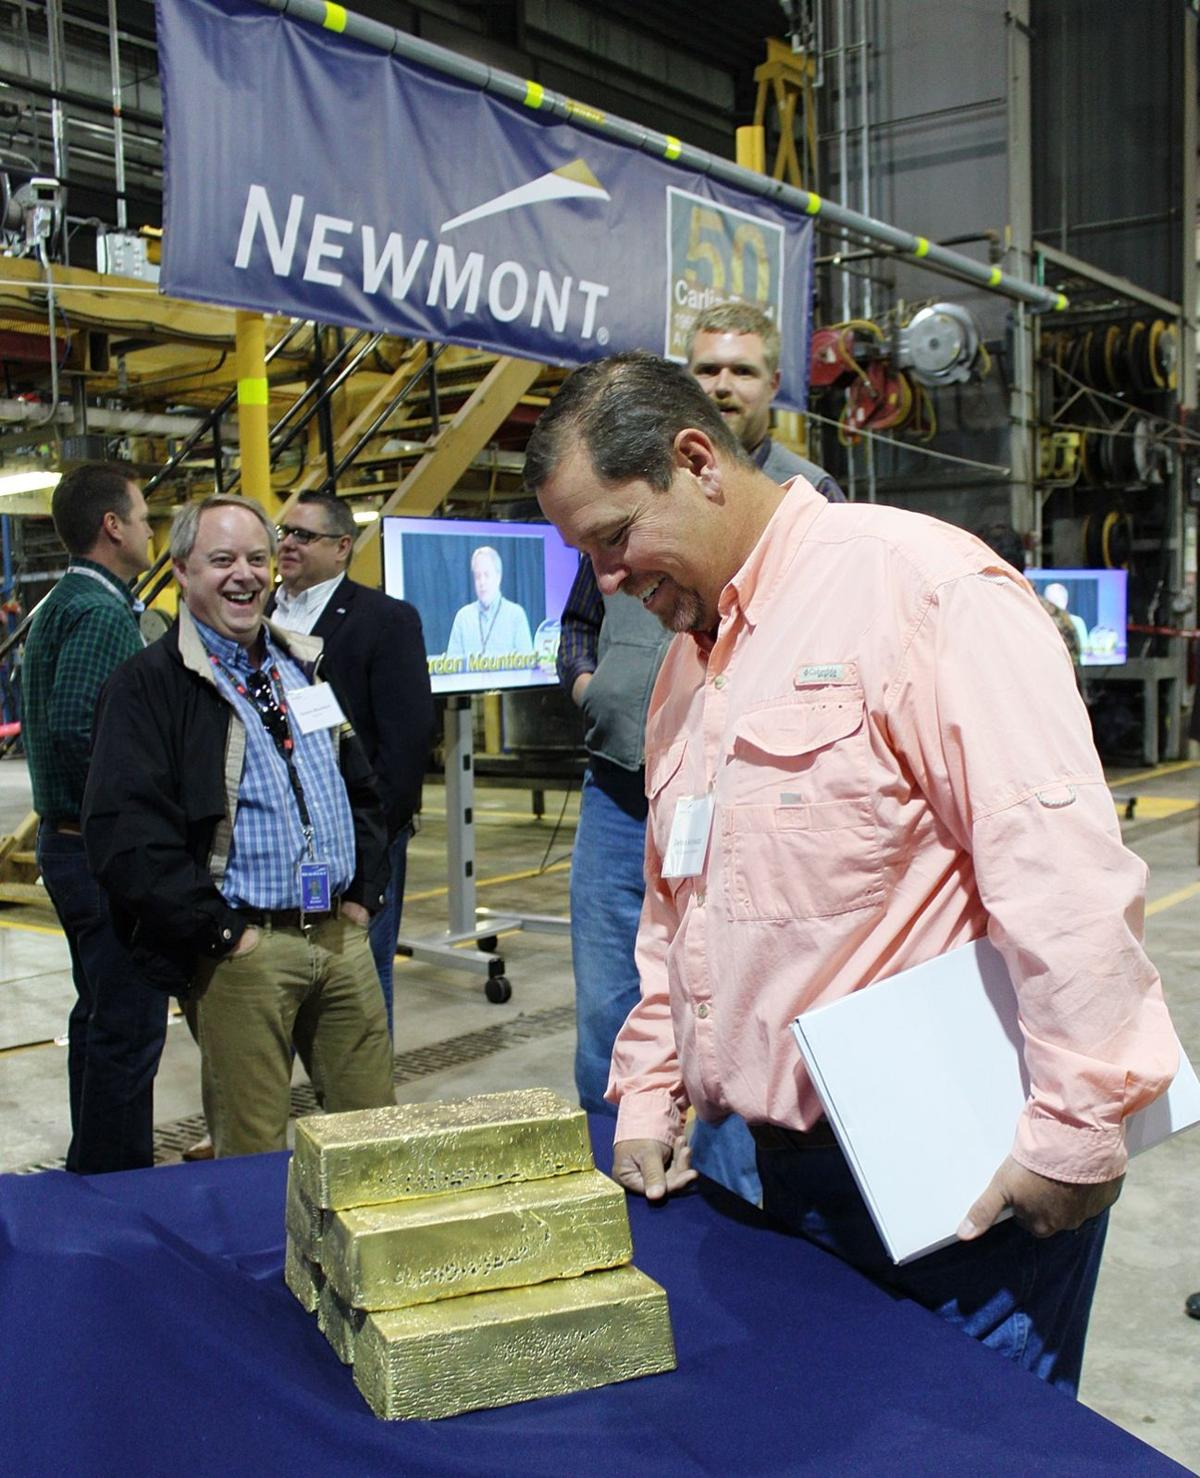 Newmont celebrates 50 years in Carlin